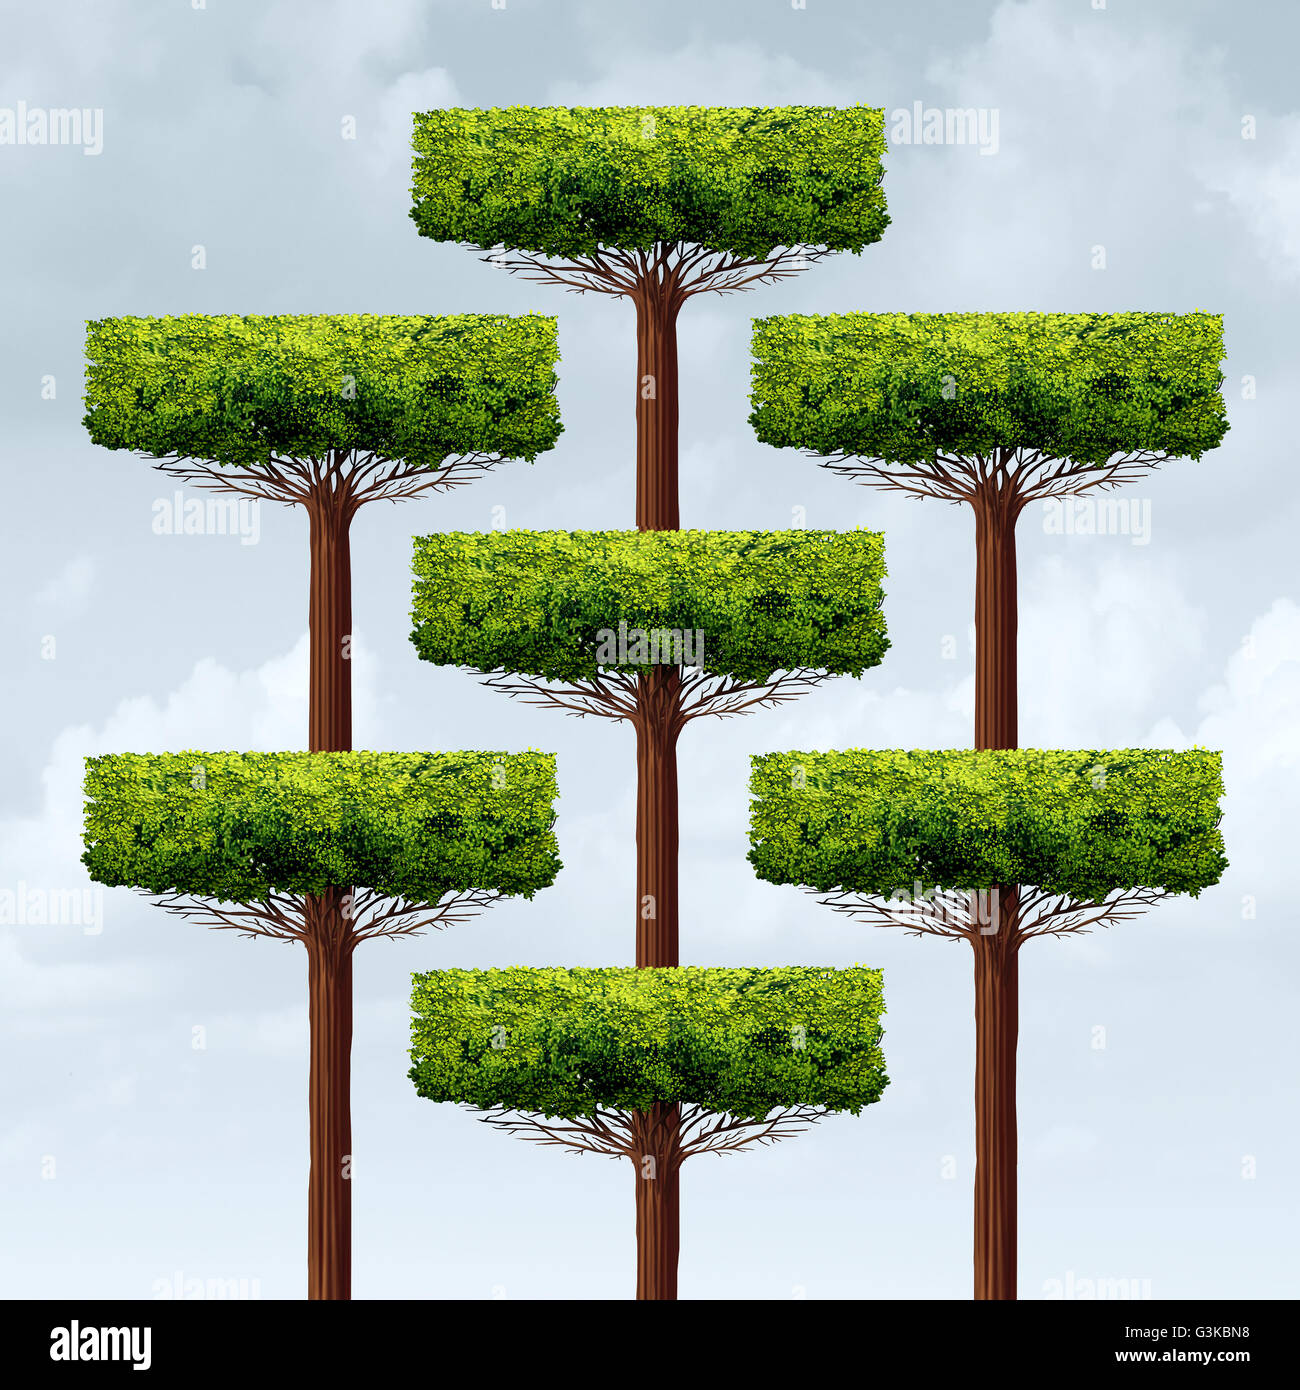 Organization structure growth as a group of organized growing trees in a business structure as a financial corporate - Stock Image